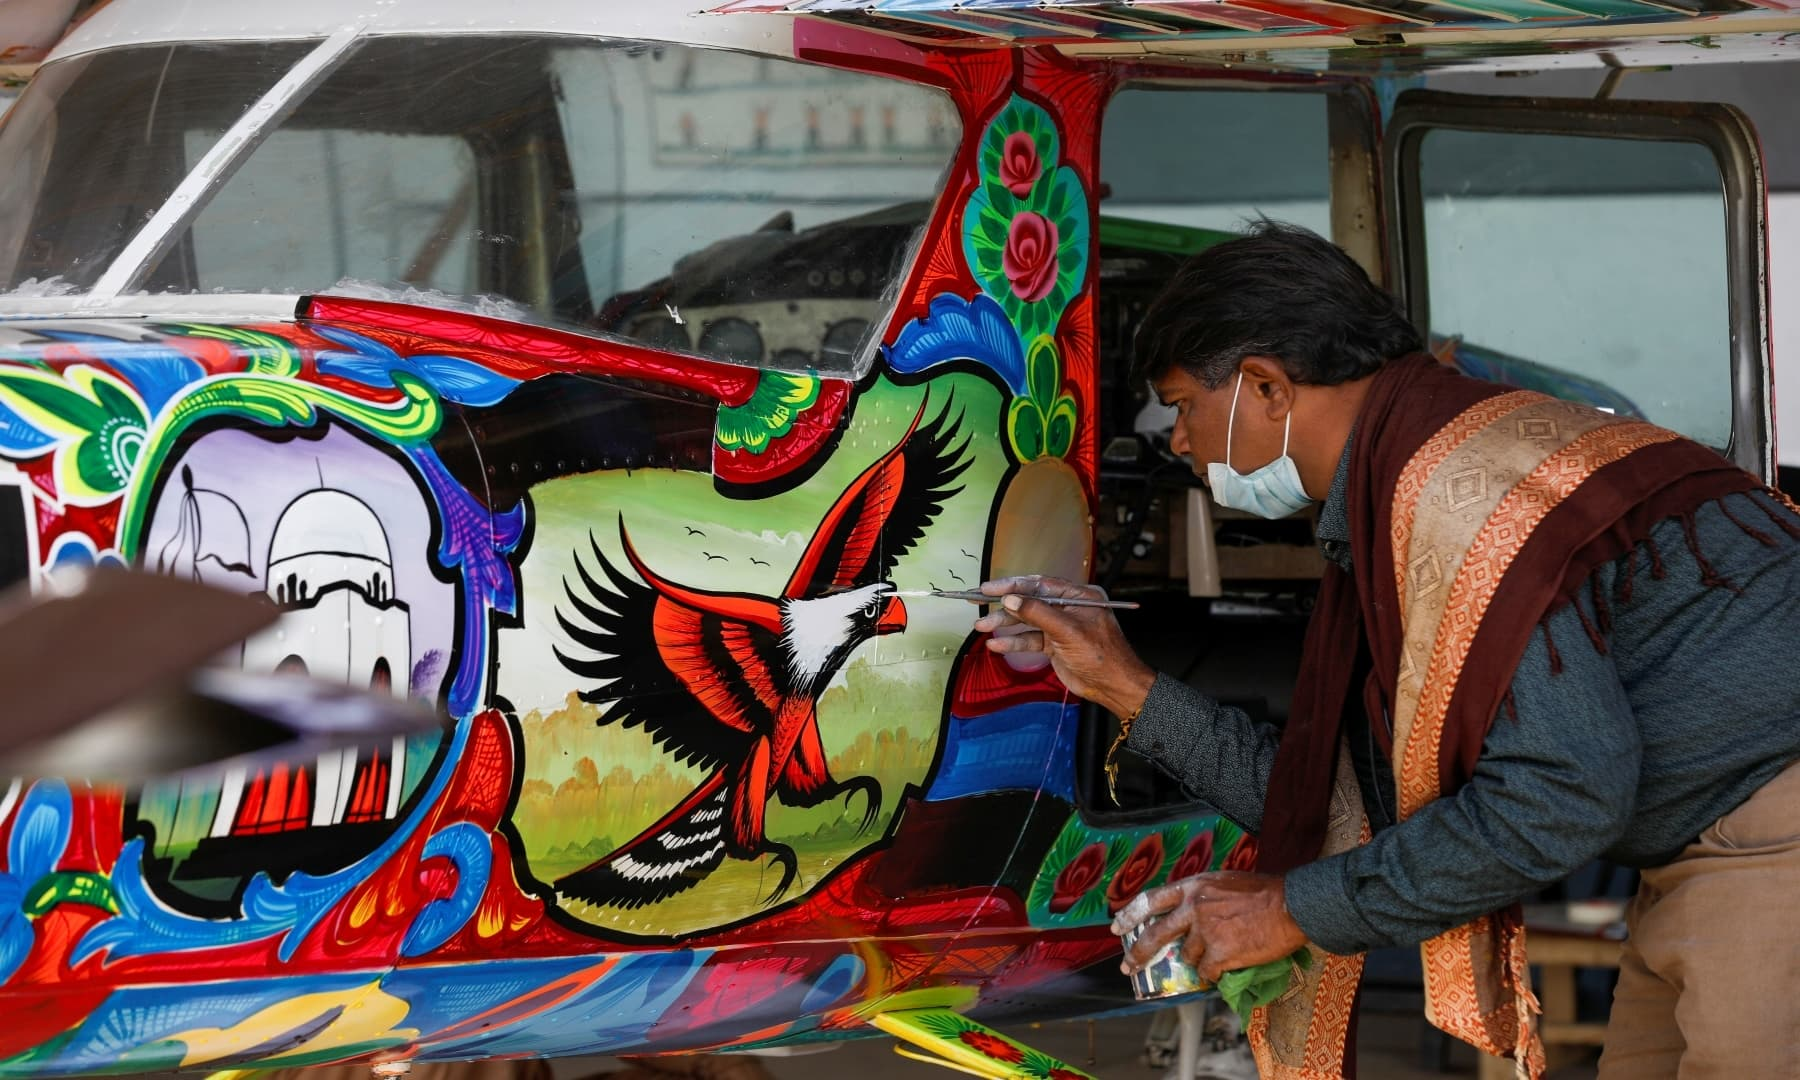 Painter Haider Ali paints Pakistani truck art on a two-seater Cessna aircraft at the Jinnah International Airport, Karachi, Dec 30, 2020. — Reuters